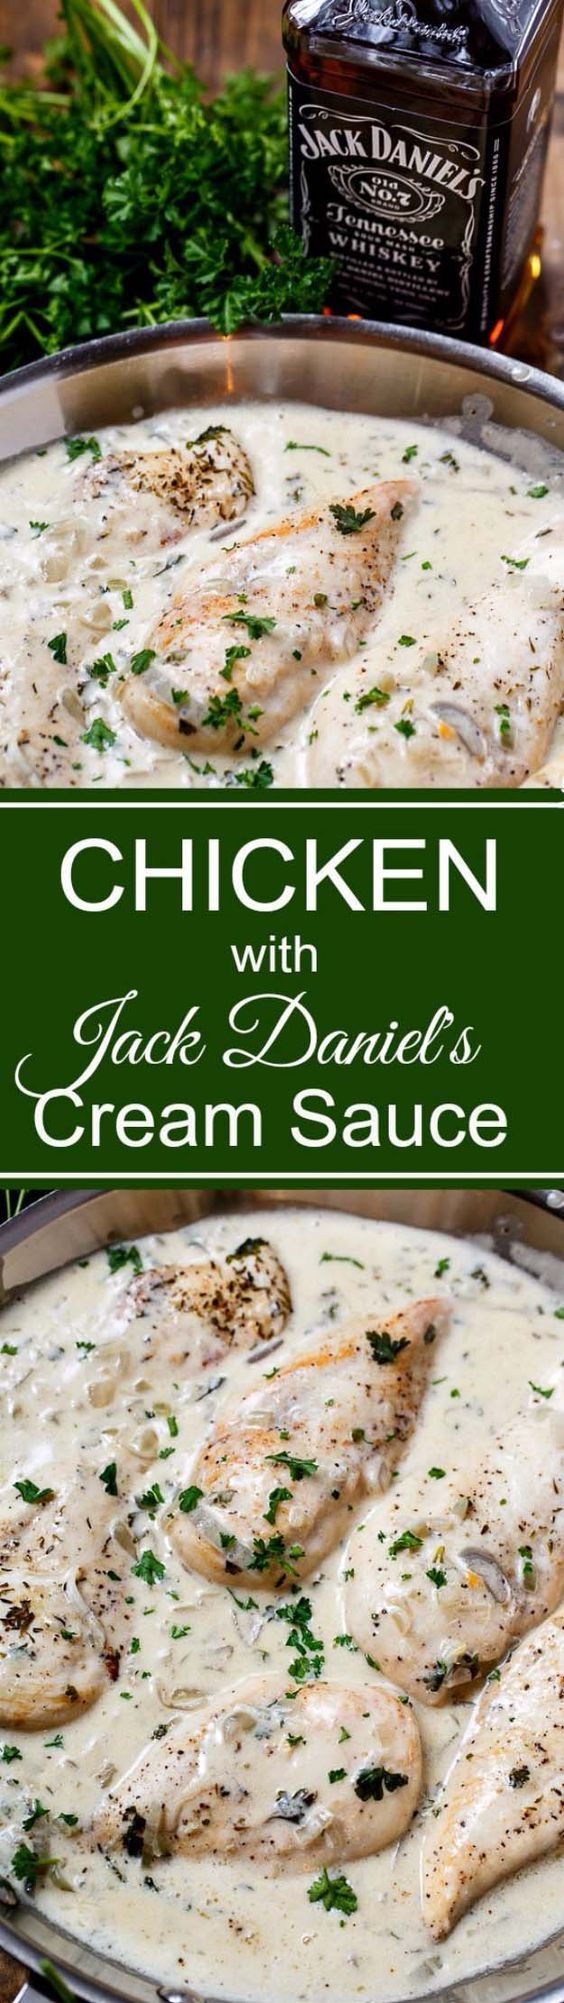 Fun DIY Ideas Made With Jack Daniels - Recipes, Projects and Crafts With The Bottle, Everything From Lamps and Decorations to Fudge and Cupcakes | Chicken in Jack Daniels Cream Sauce | http://diyjoy.com/diy-projects-jack-daniels